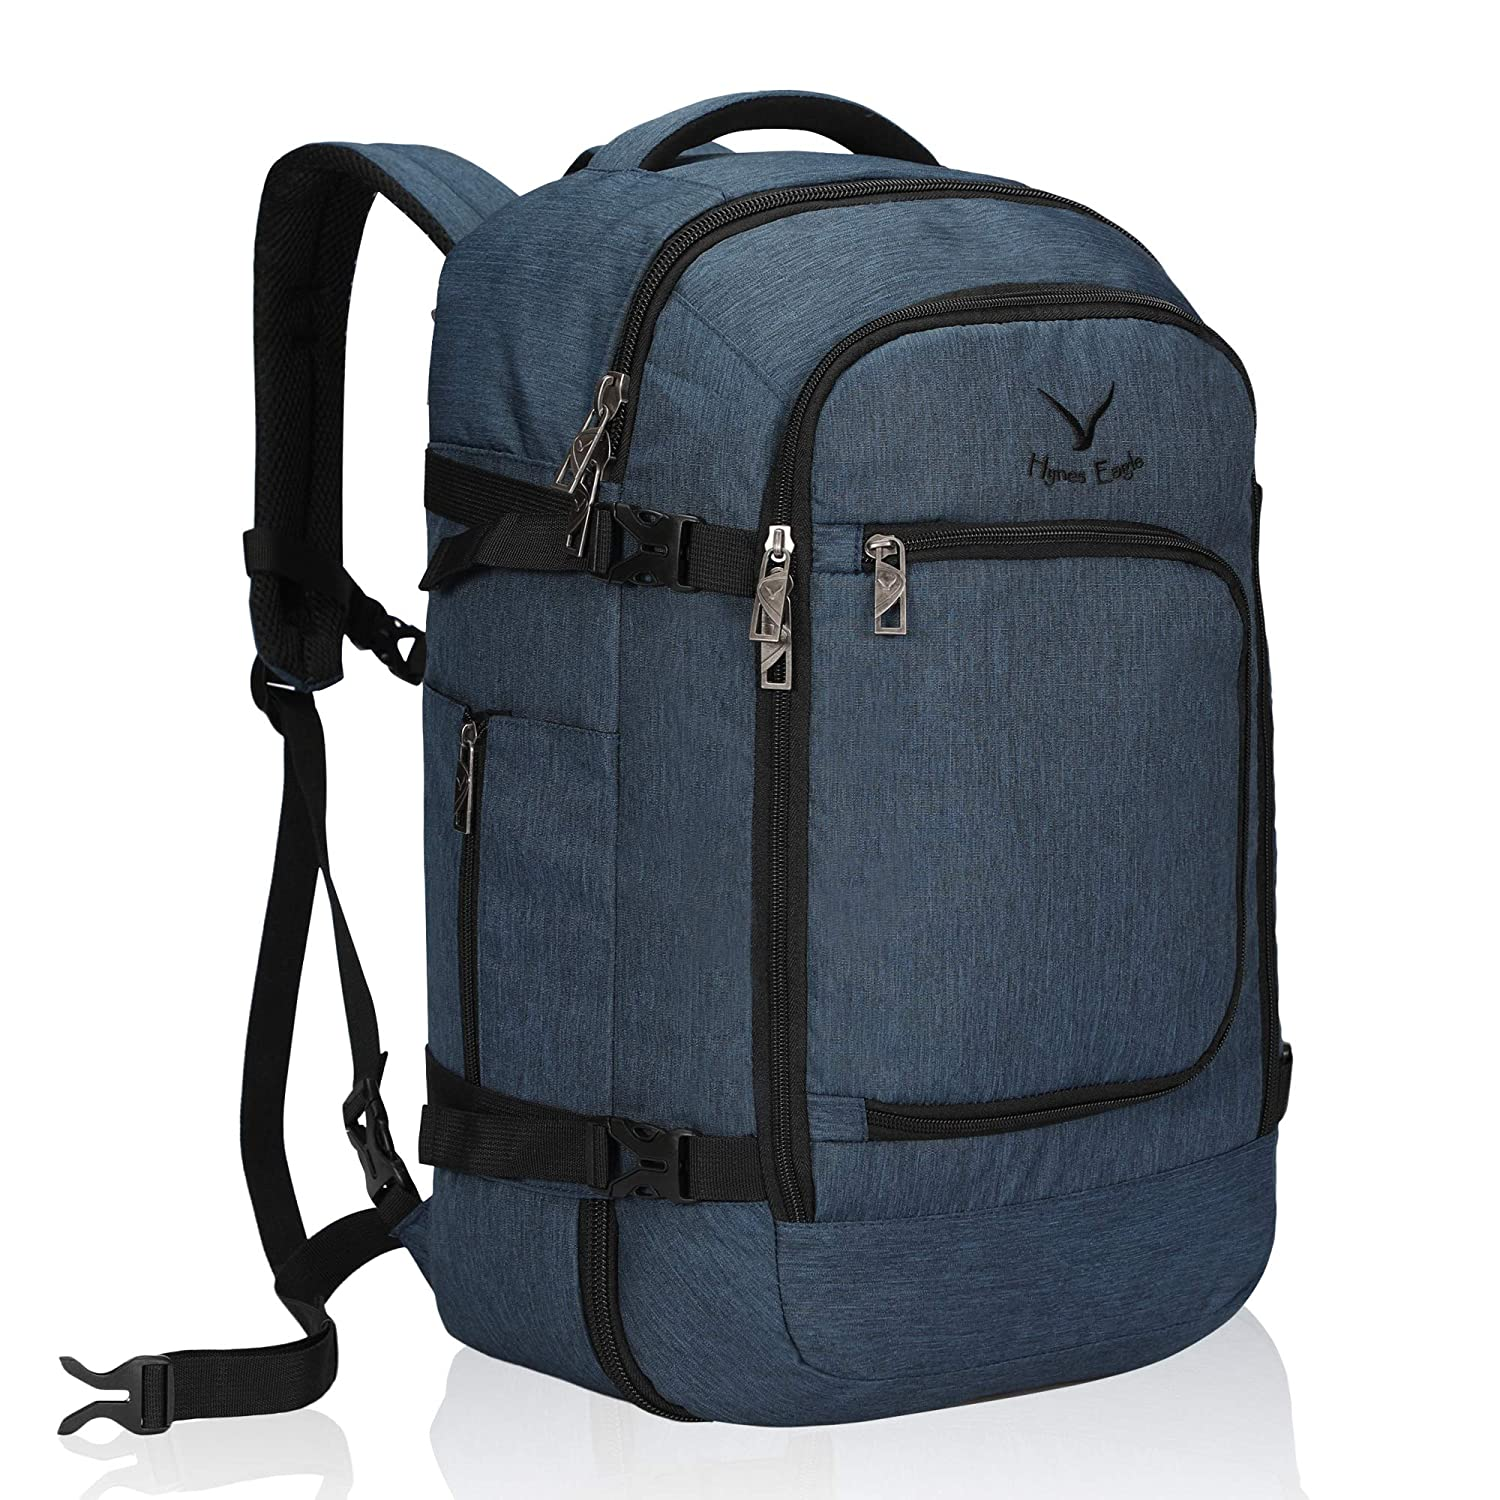 Backpack, Black Hynes Eagle 40L Carry on Backpack Flight Approved Hand Luggage Travel Cabin Bag 51x34x25cm